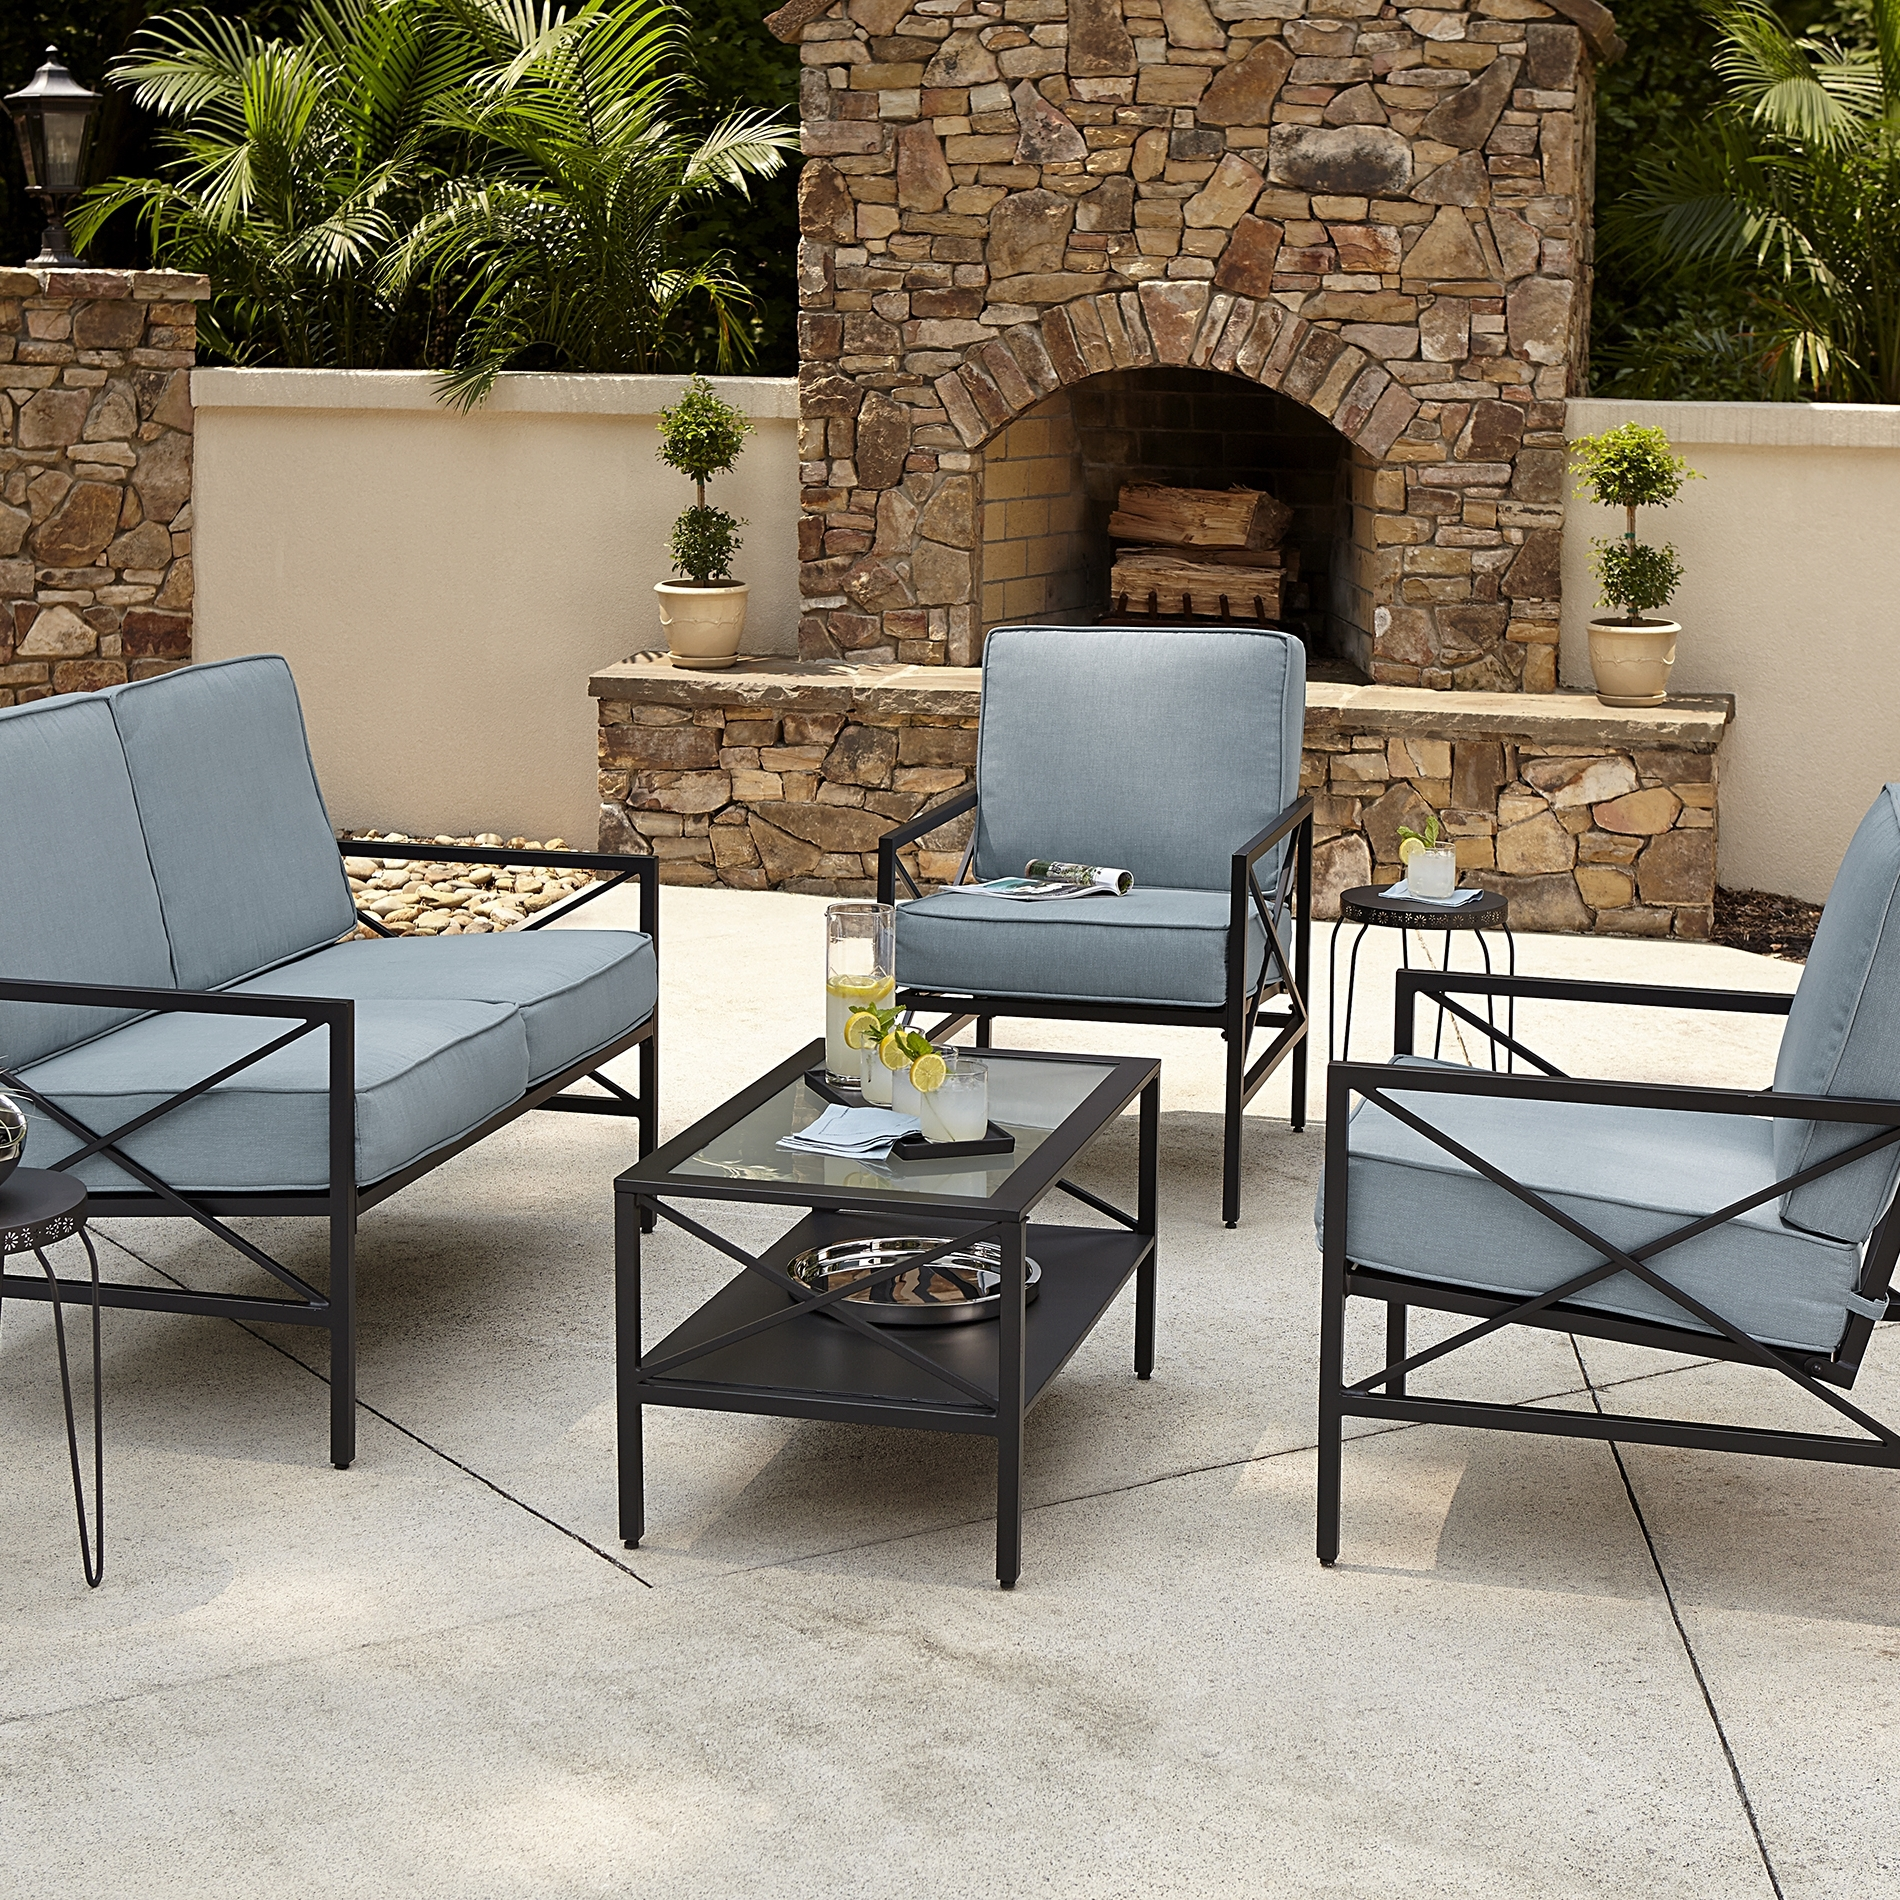 Patio Conversation Sets With Blue Cushions Intended For Most Up To Date Patio : Blue Hill Piecetio Conversation Set Hampton Bay Outdoor Sets (View 14 of 15)